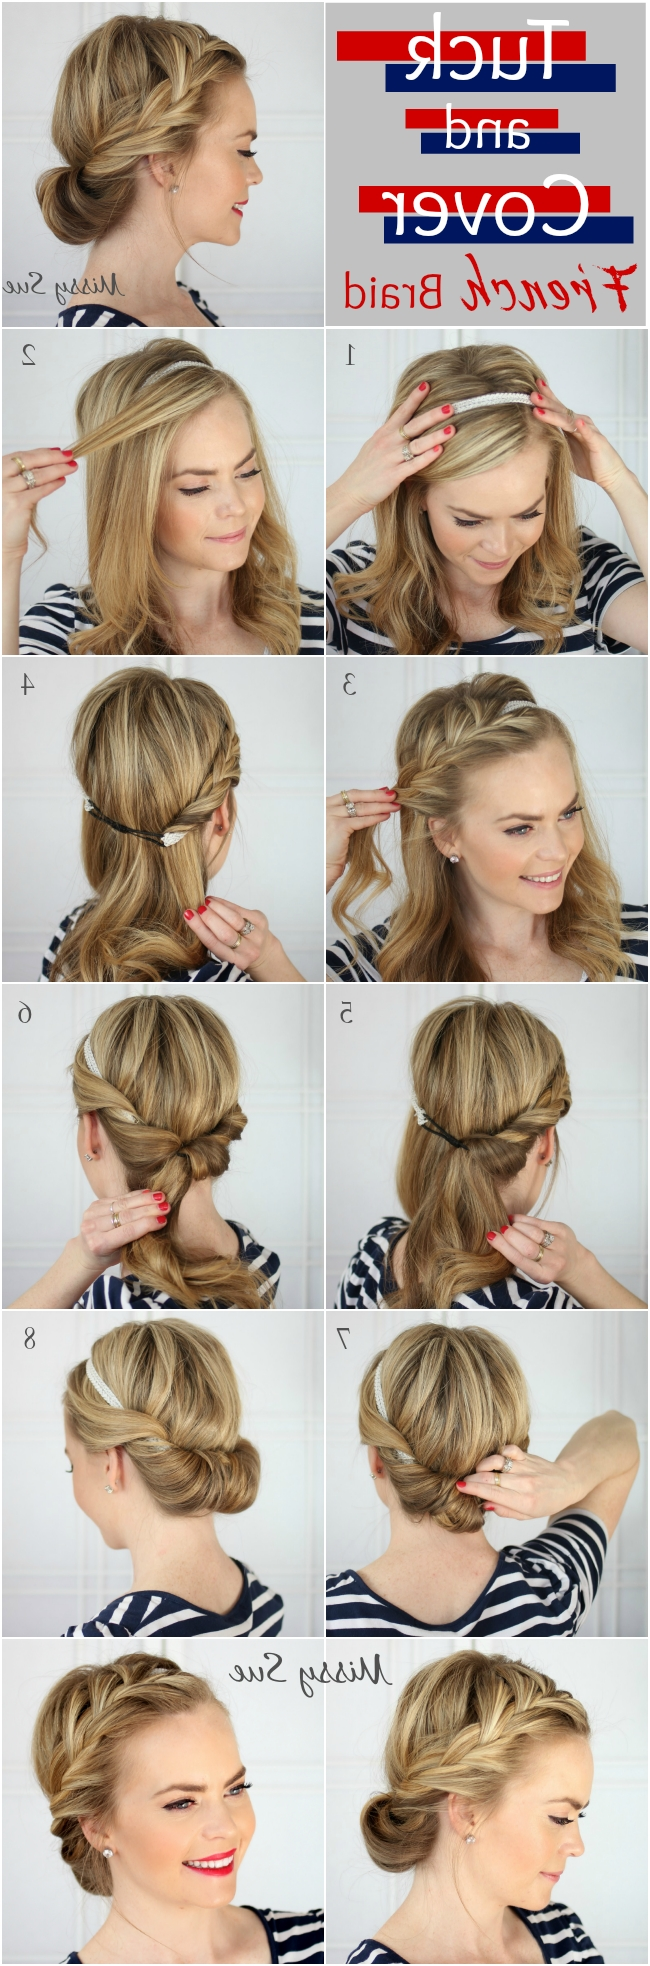 Tulle & Chantilly Intended For Well Known Diy Wedding Hairstyles For Long Hair (View 3 of 15)